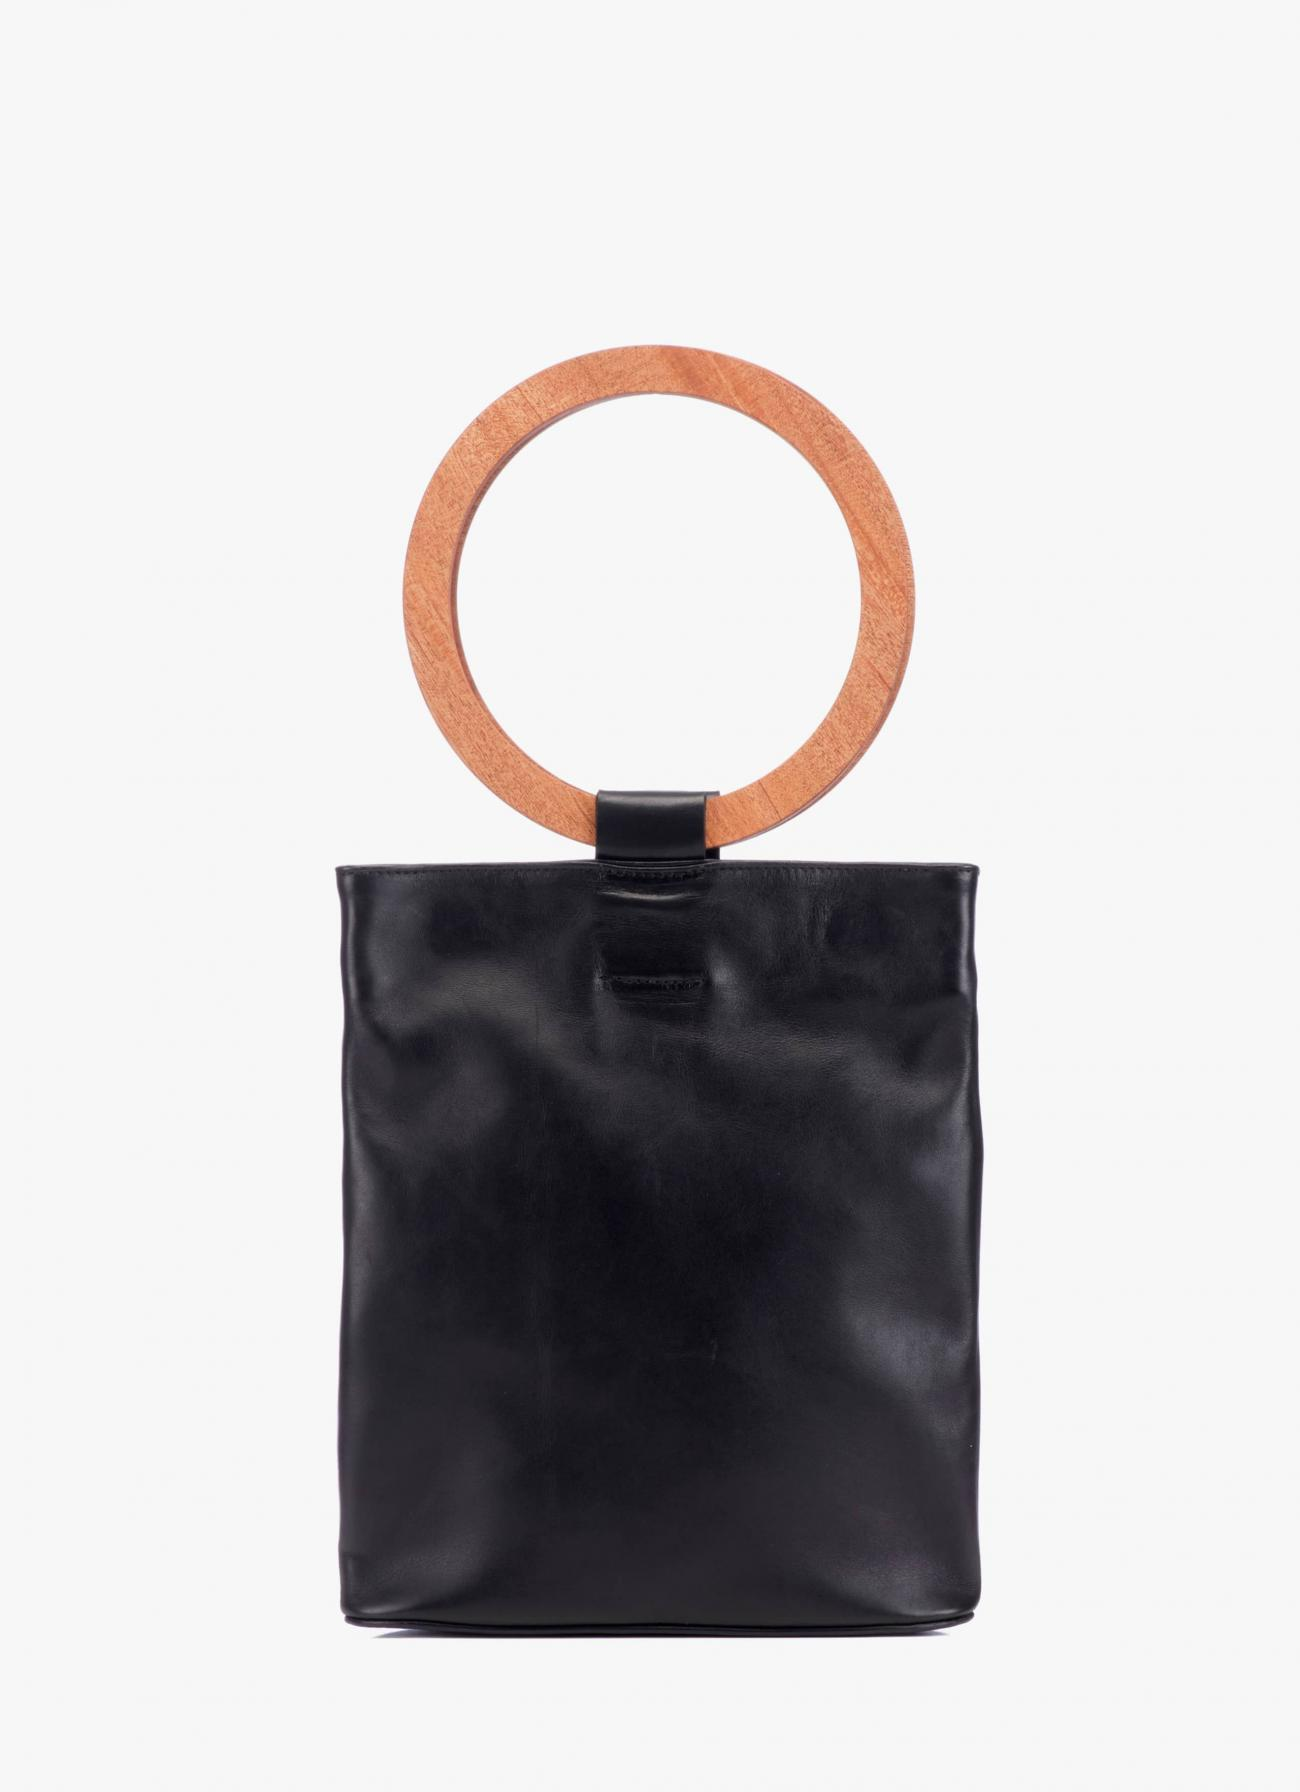 Modern Weaving - Wood Handle Circle Clutch - Black with Mahogany Handles